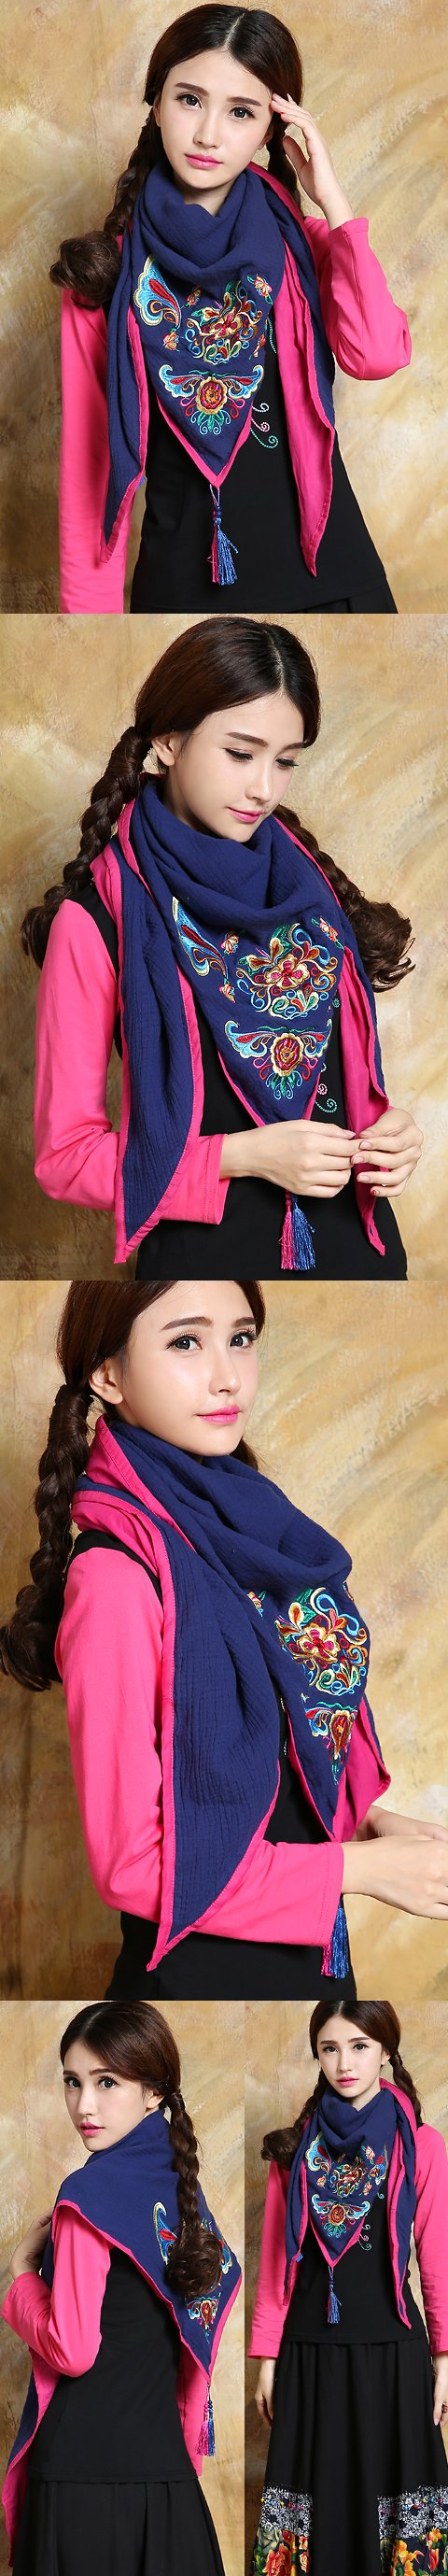 Versatile Ethnic Embroidery Cotton Linen Shawl - Blue/Fuchsia